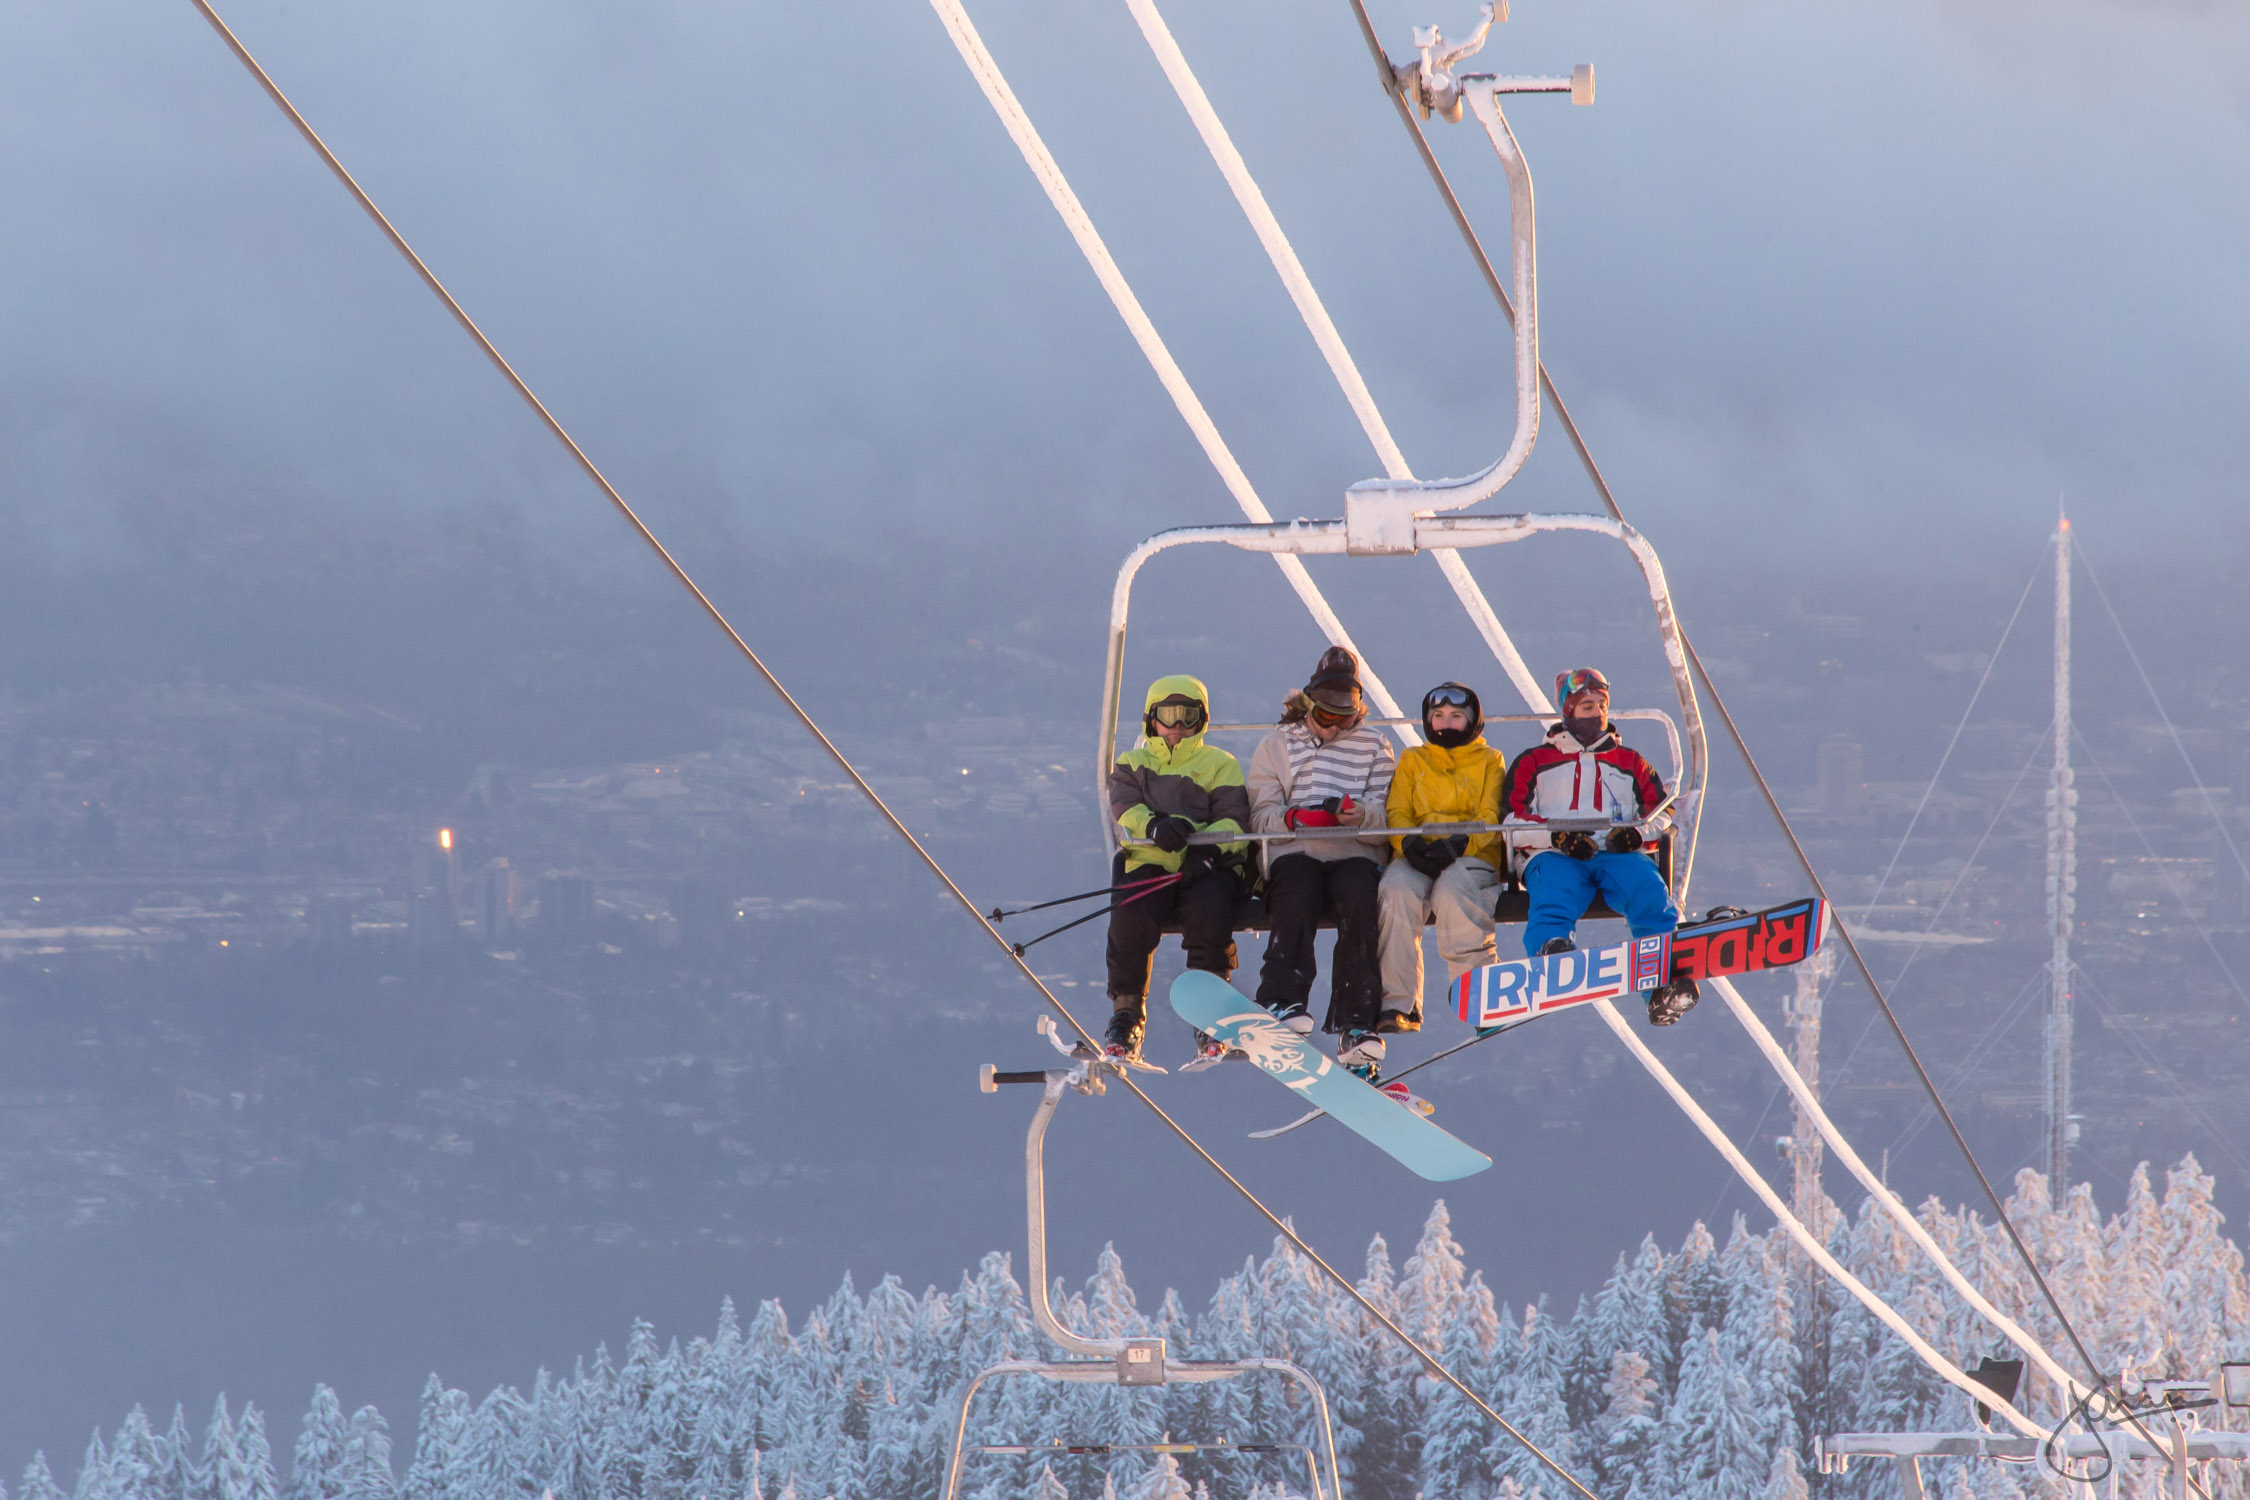 Boarders heading up the chairlift